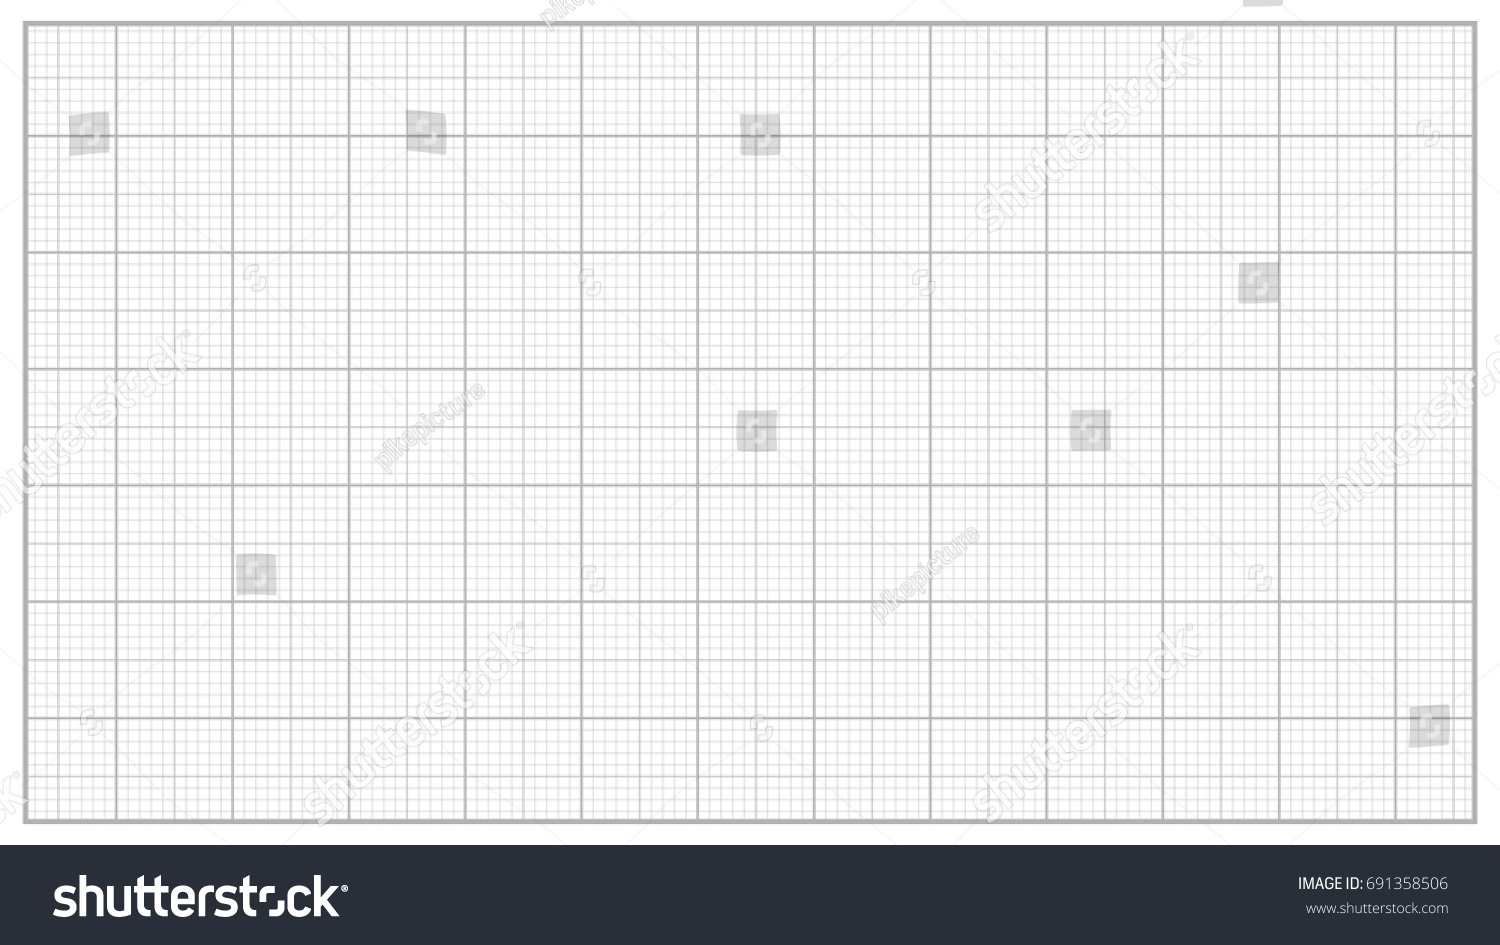 millimeter paper vector grey graphing paper stock vector royalty